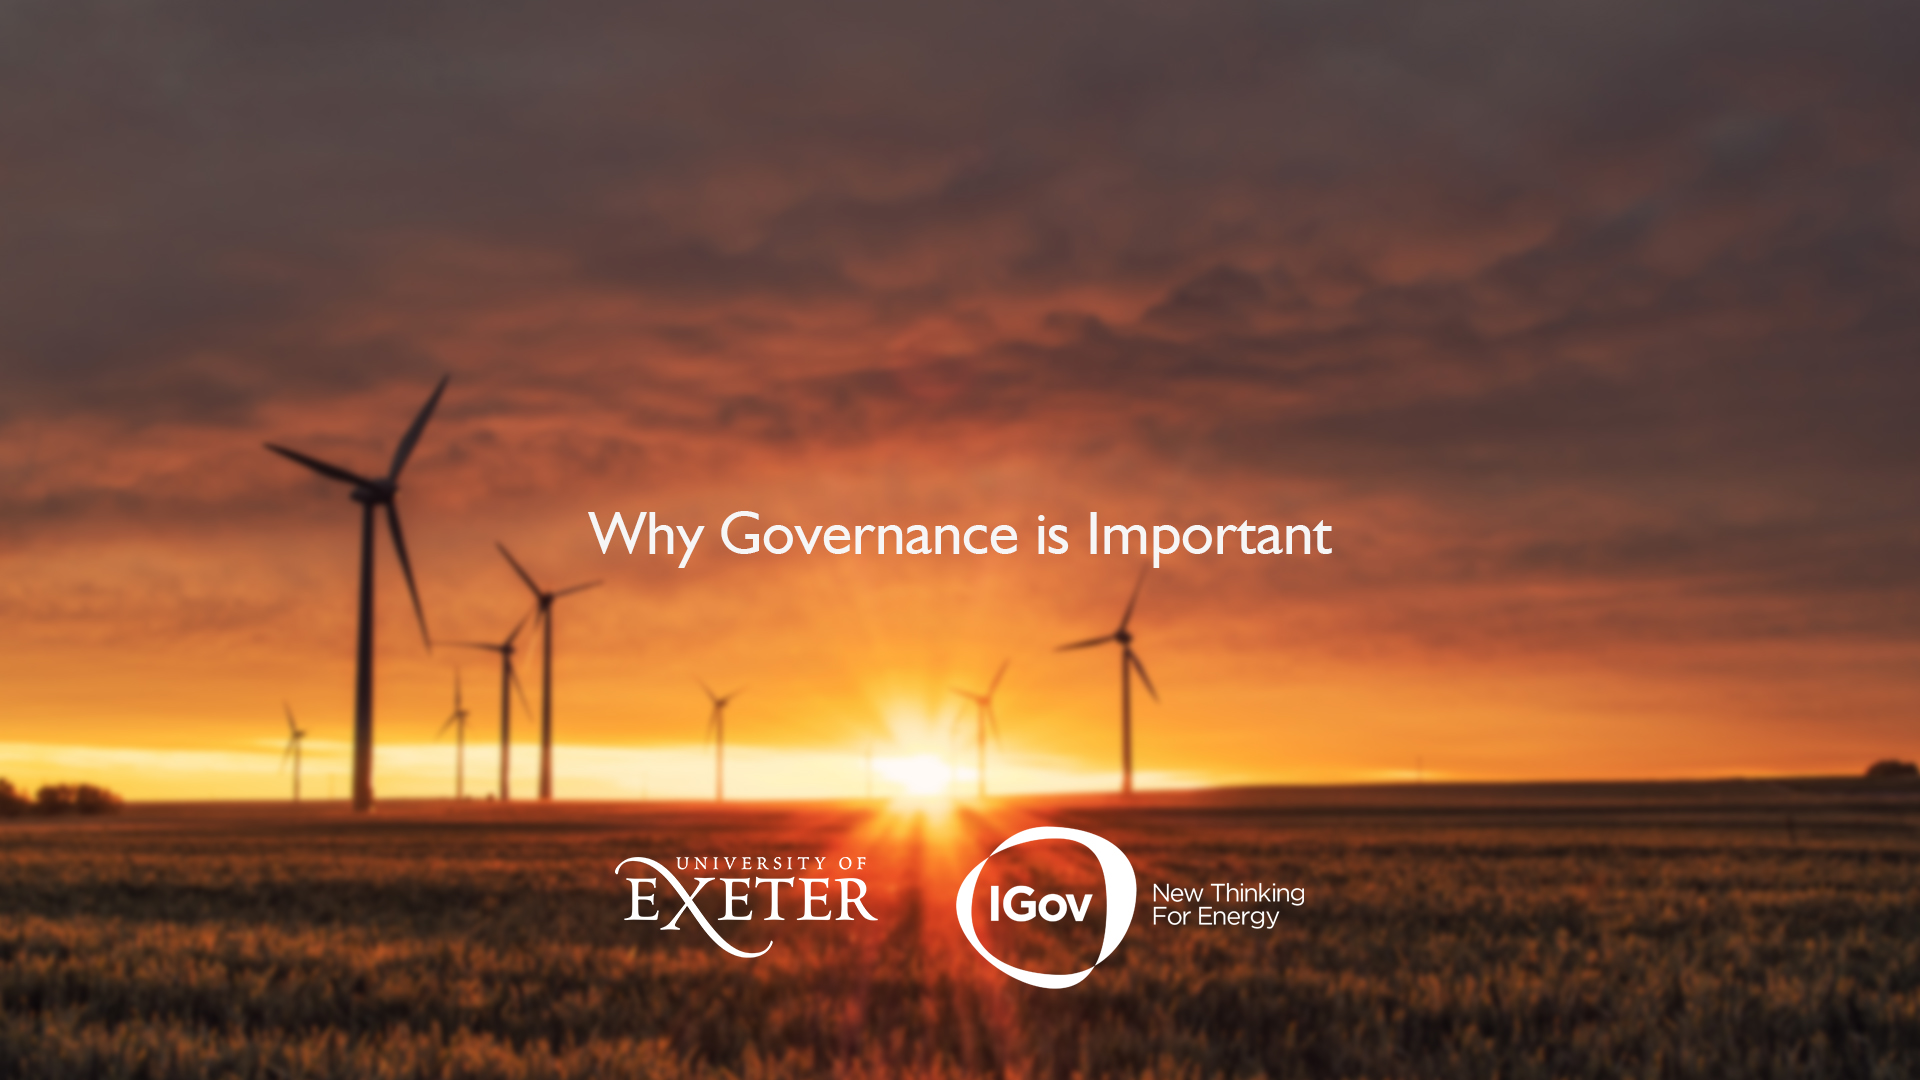 Introducing energy system transformation and why governance matters